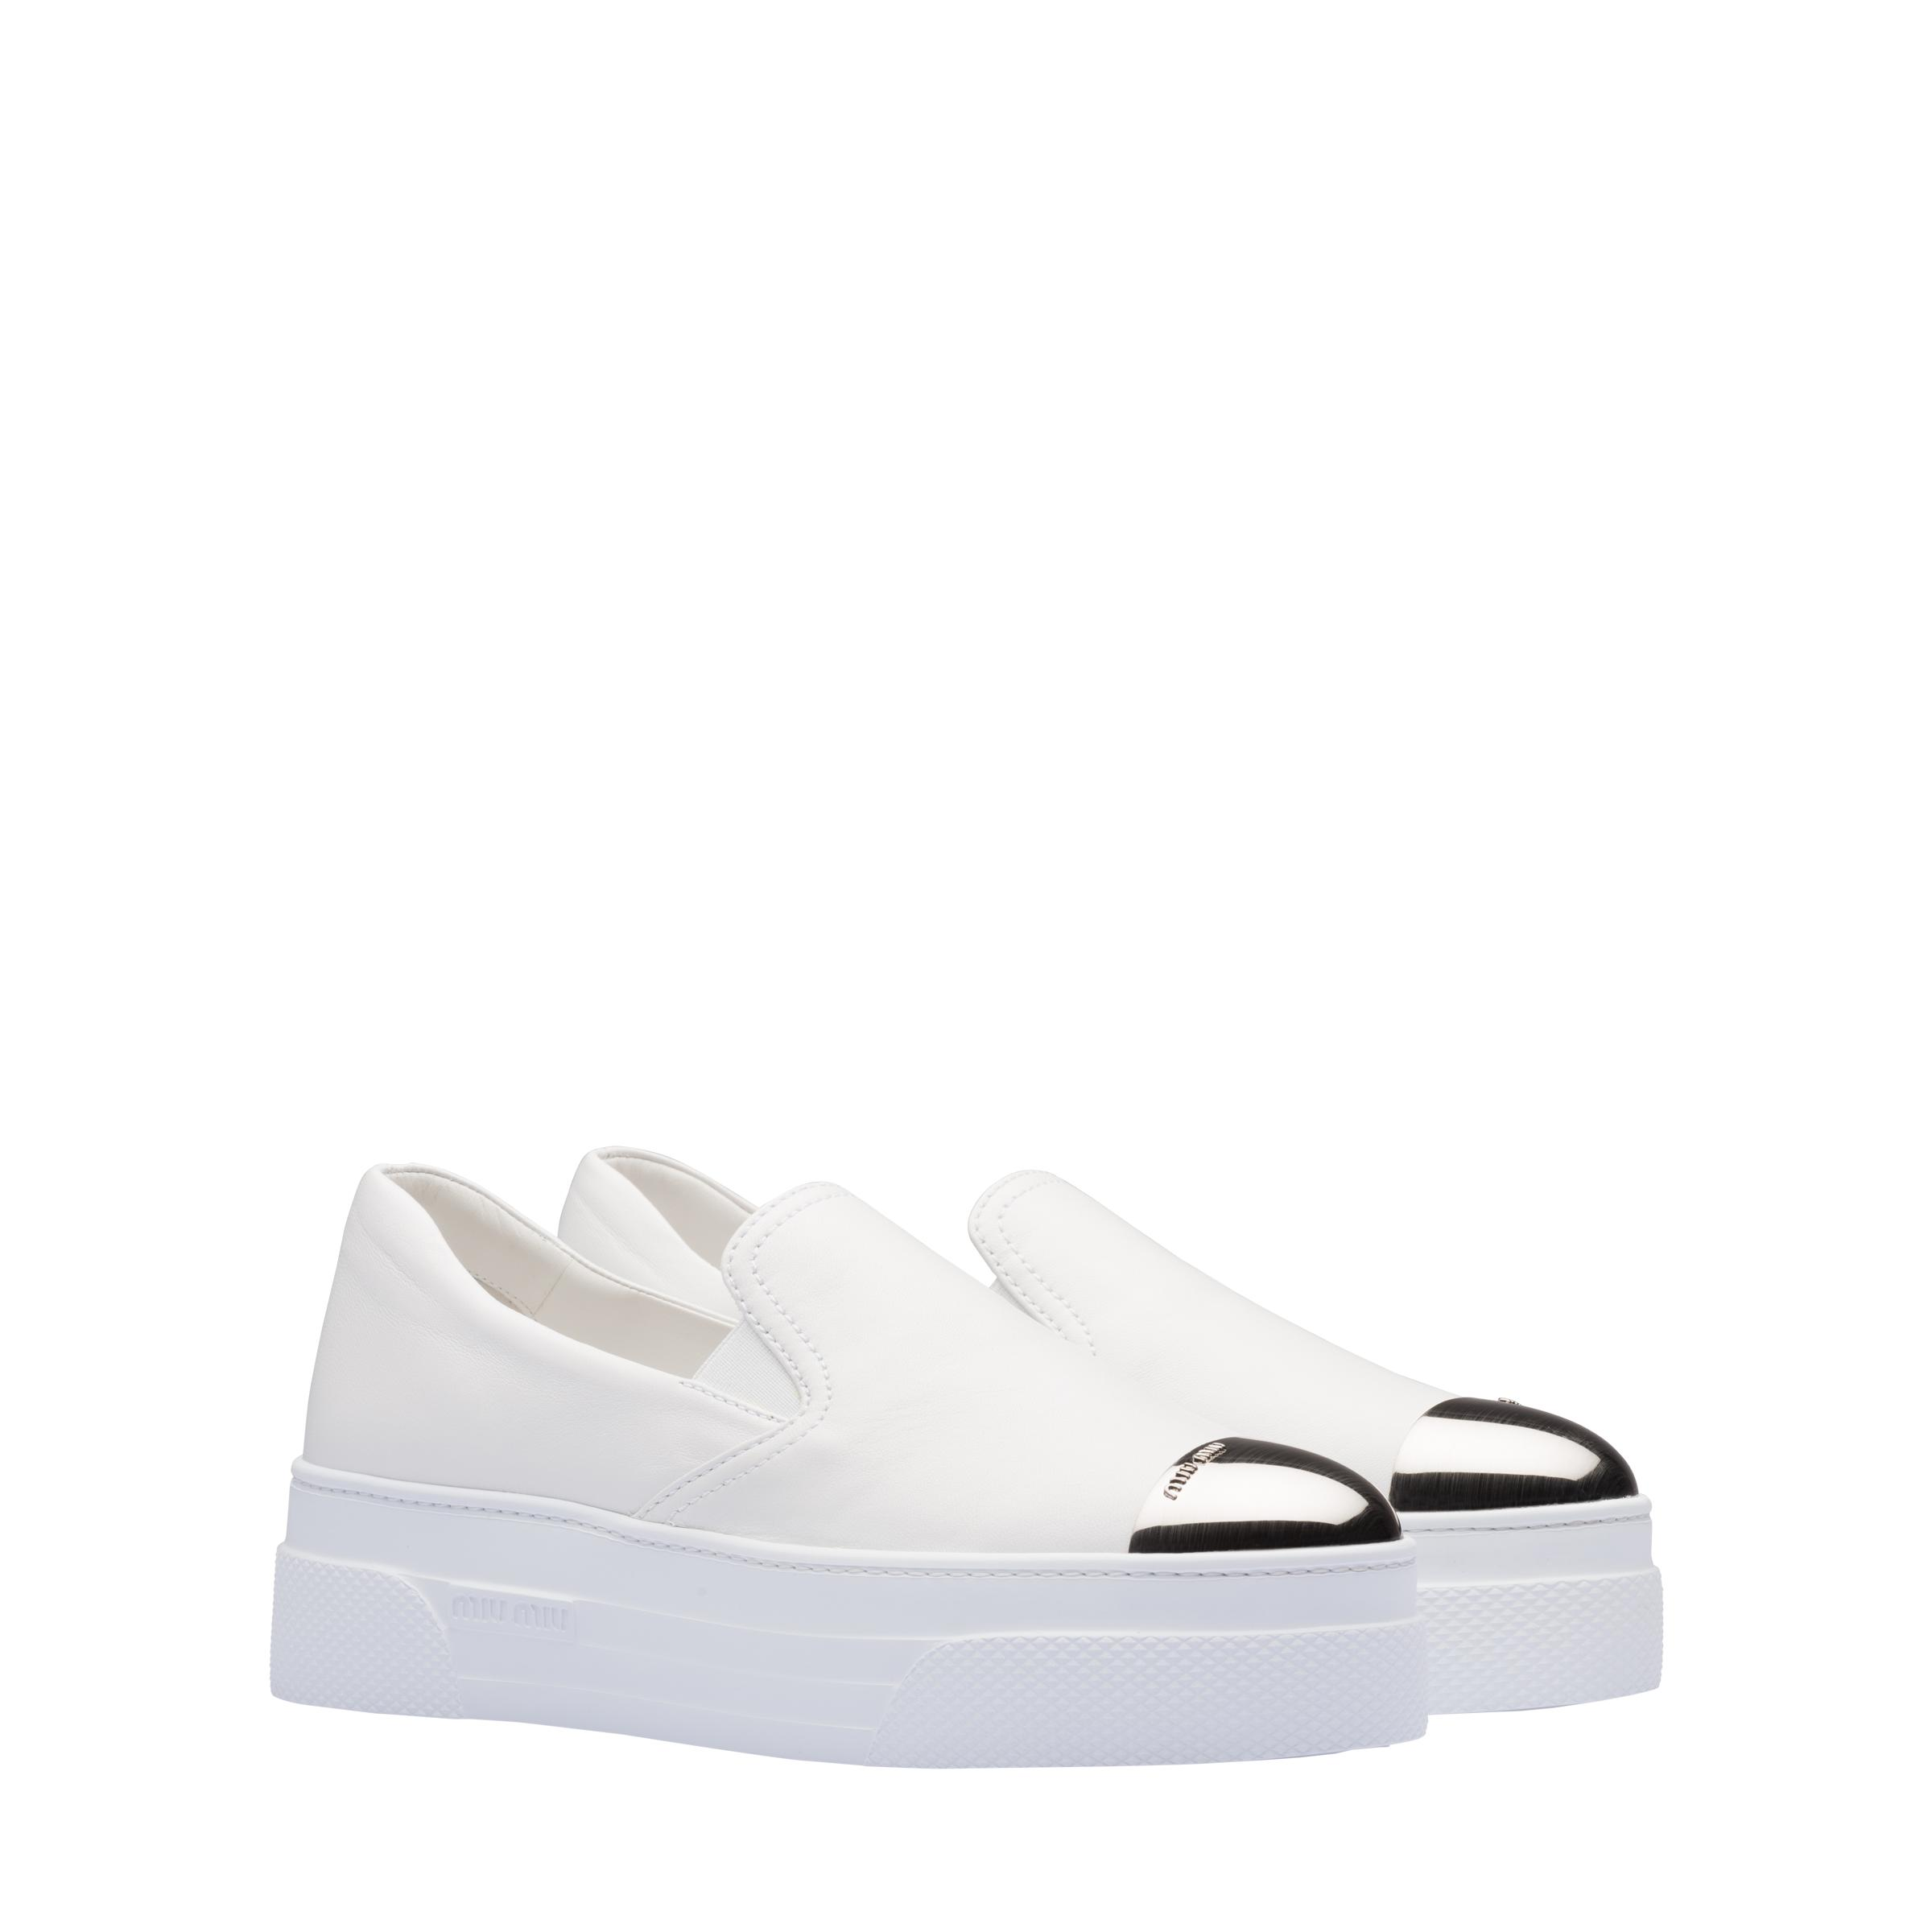 Nappa Leather Slippers Women White